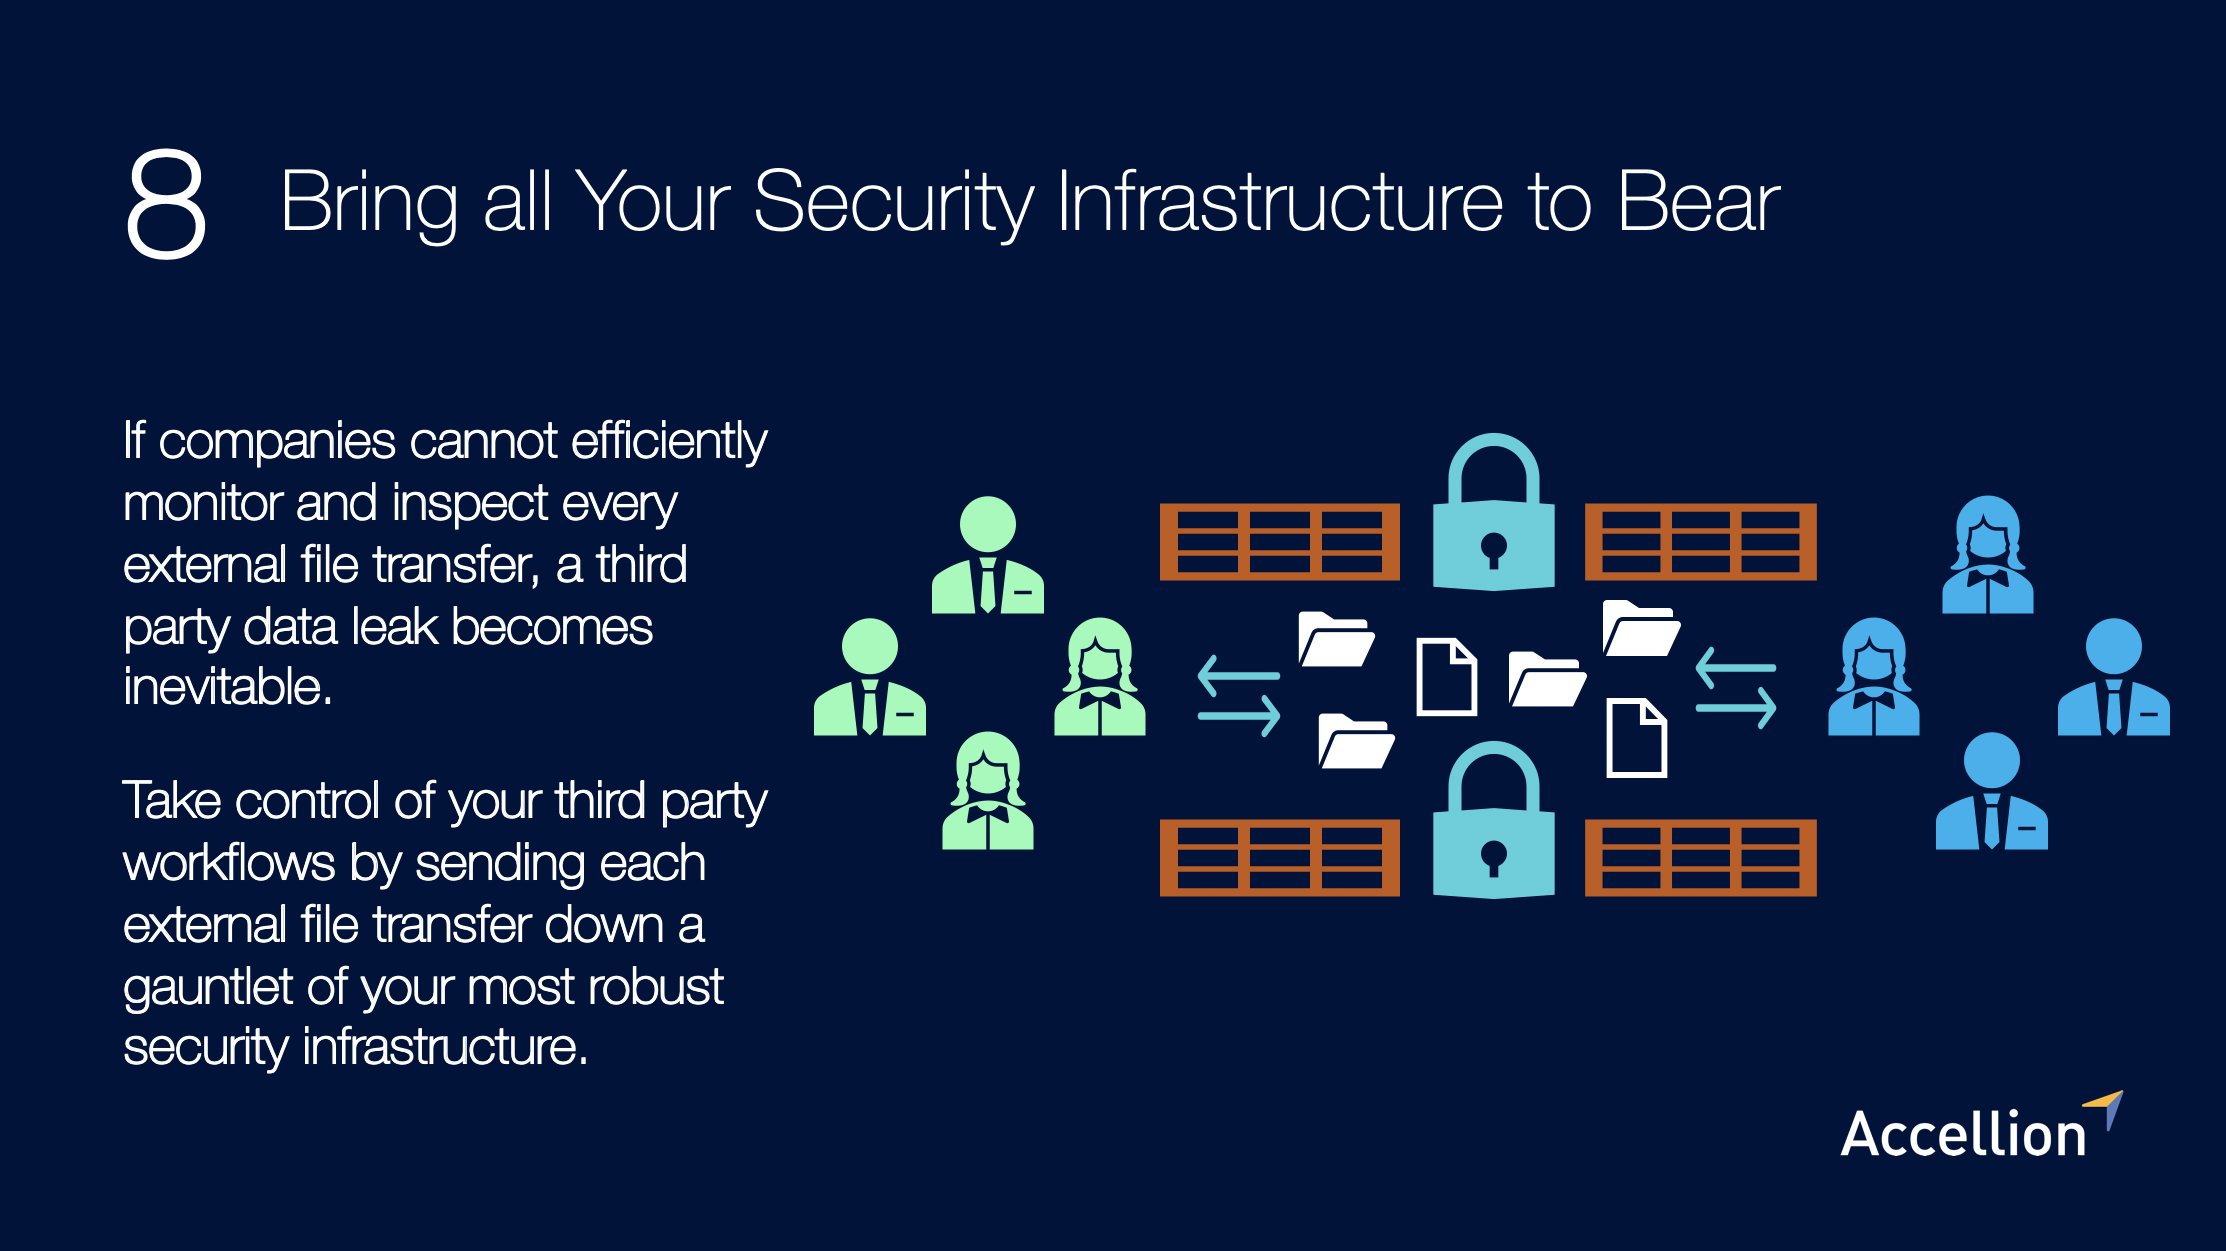 Bring All Your Security Infrastructure to Bear